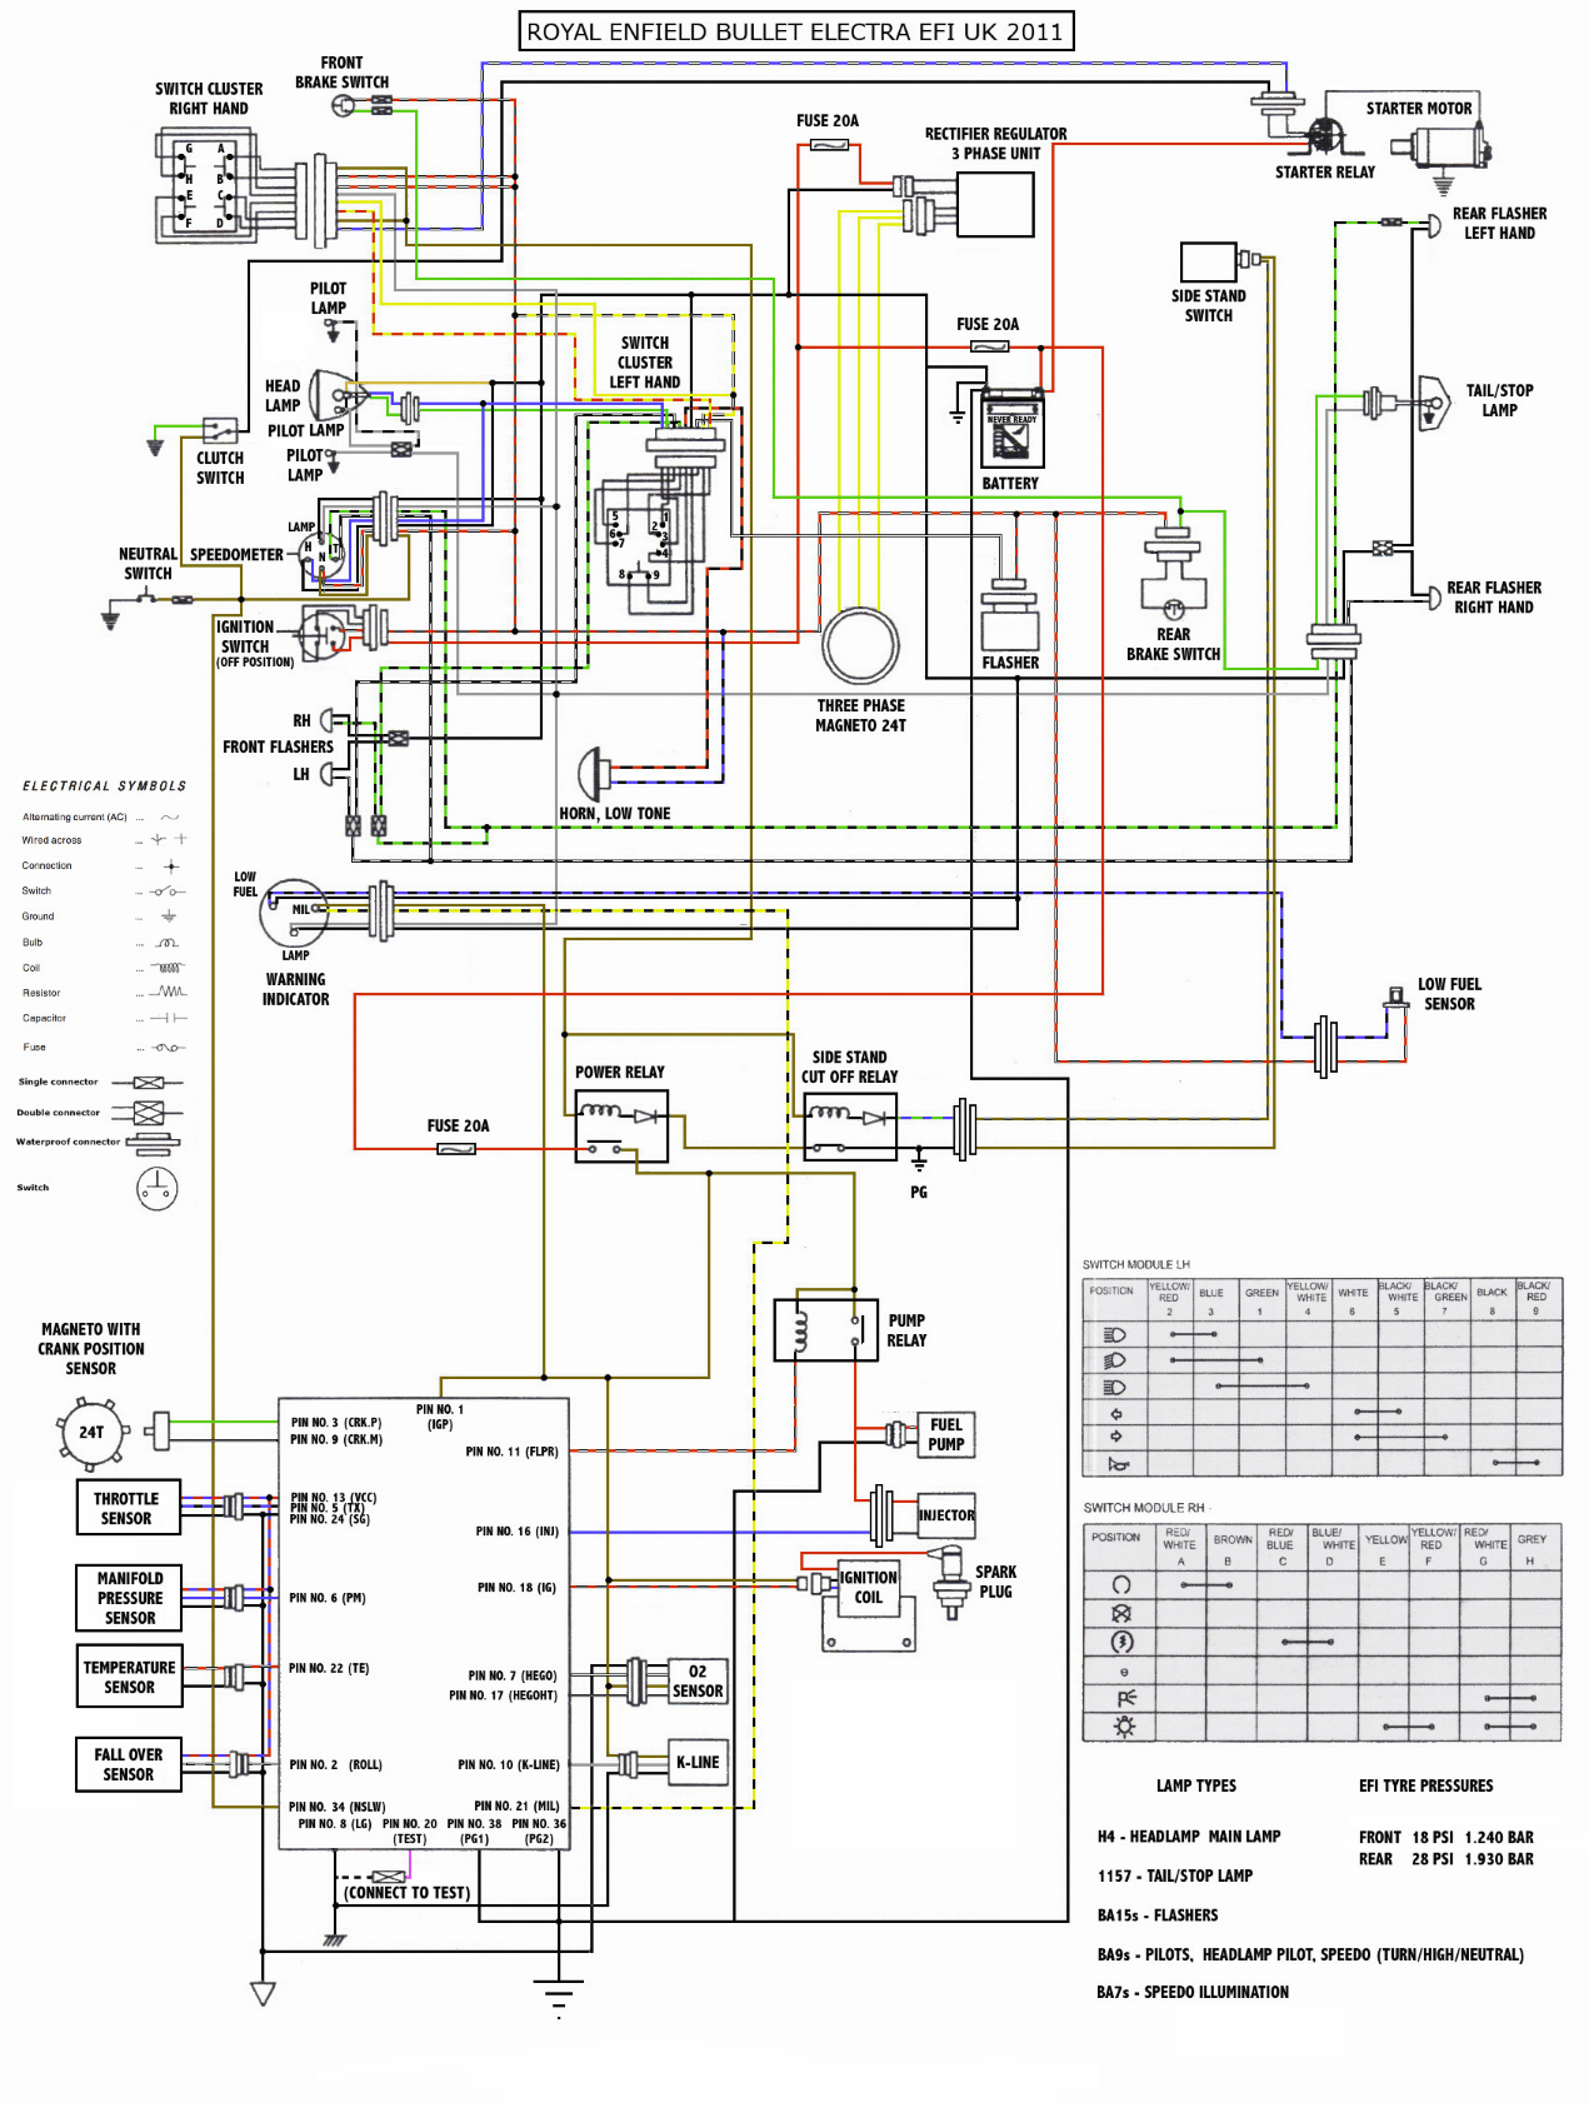 EFI workshop chart royal enfield resources royal enfield wiring diagram free at gsmportal.co